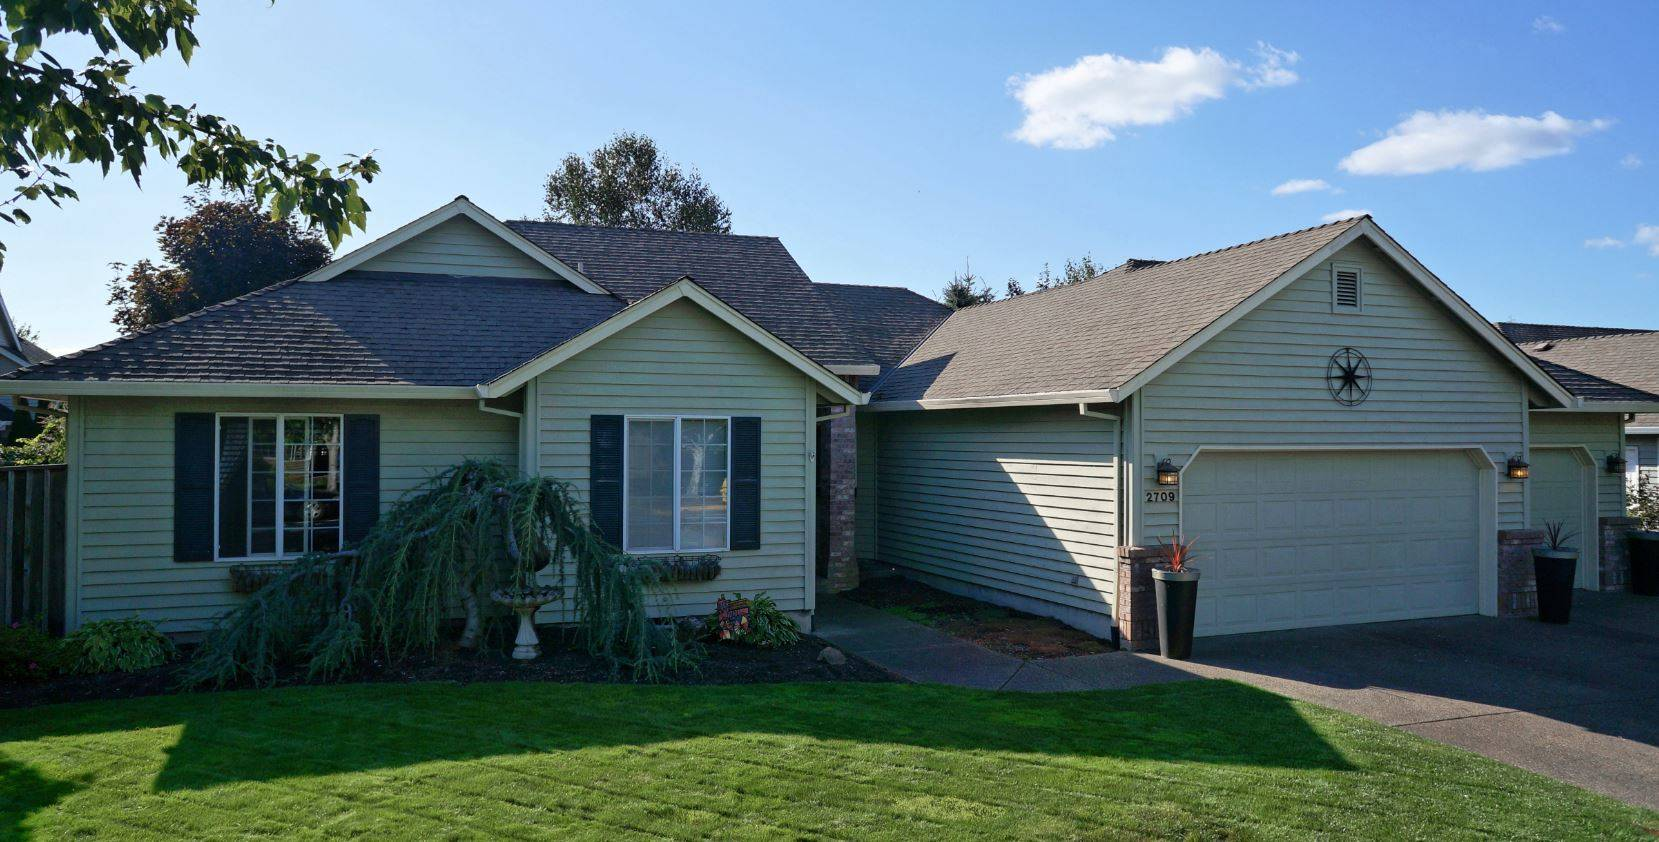 Listing in Newberg, Oregon, with The Kelly Group